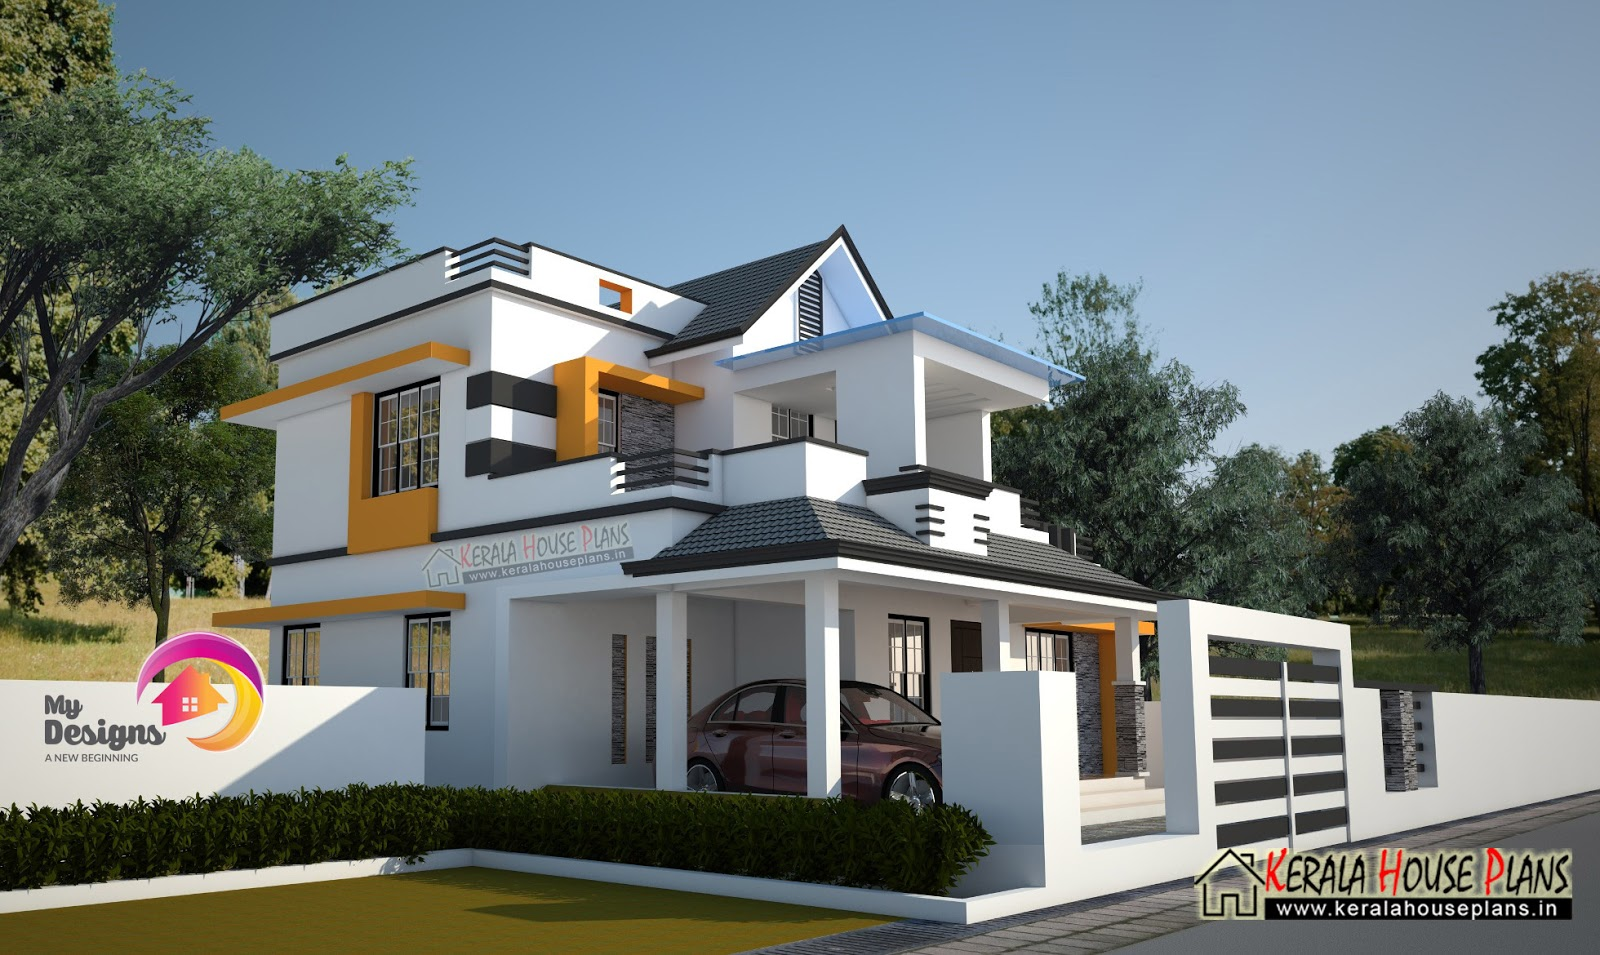 3 bedroom 2 story house design kerala house plans for House plans in kerala with 2 bedrooms